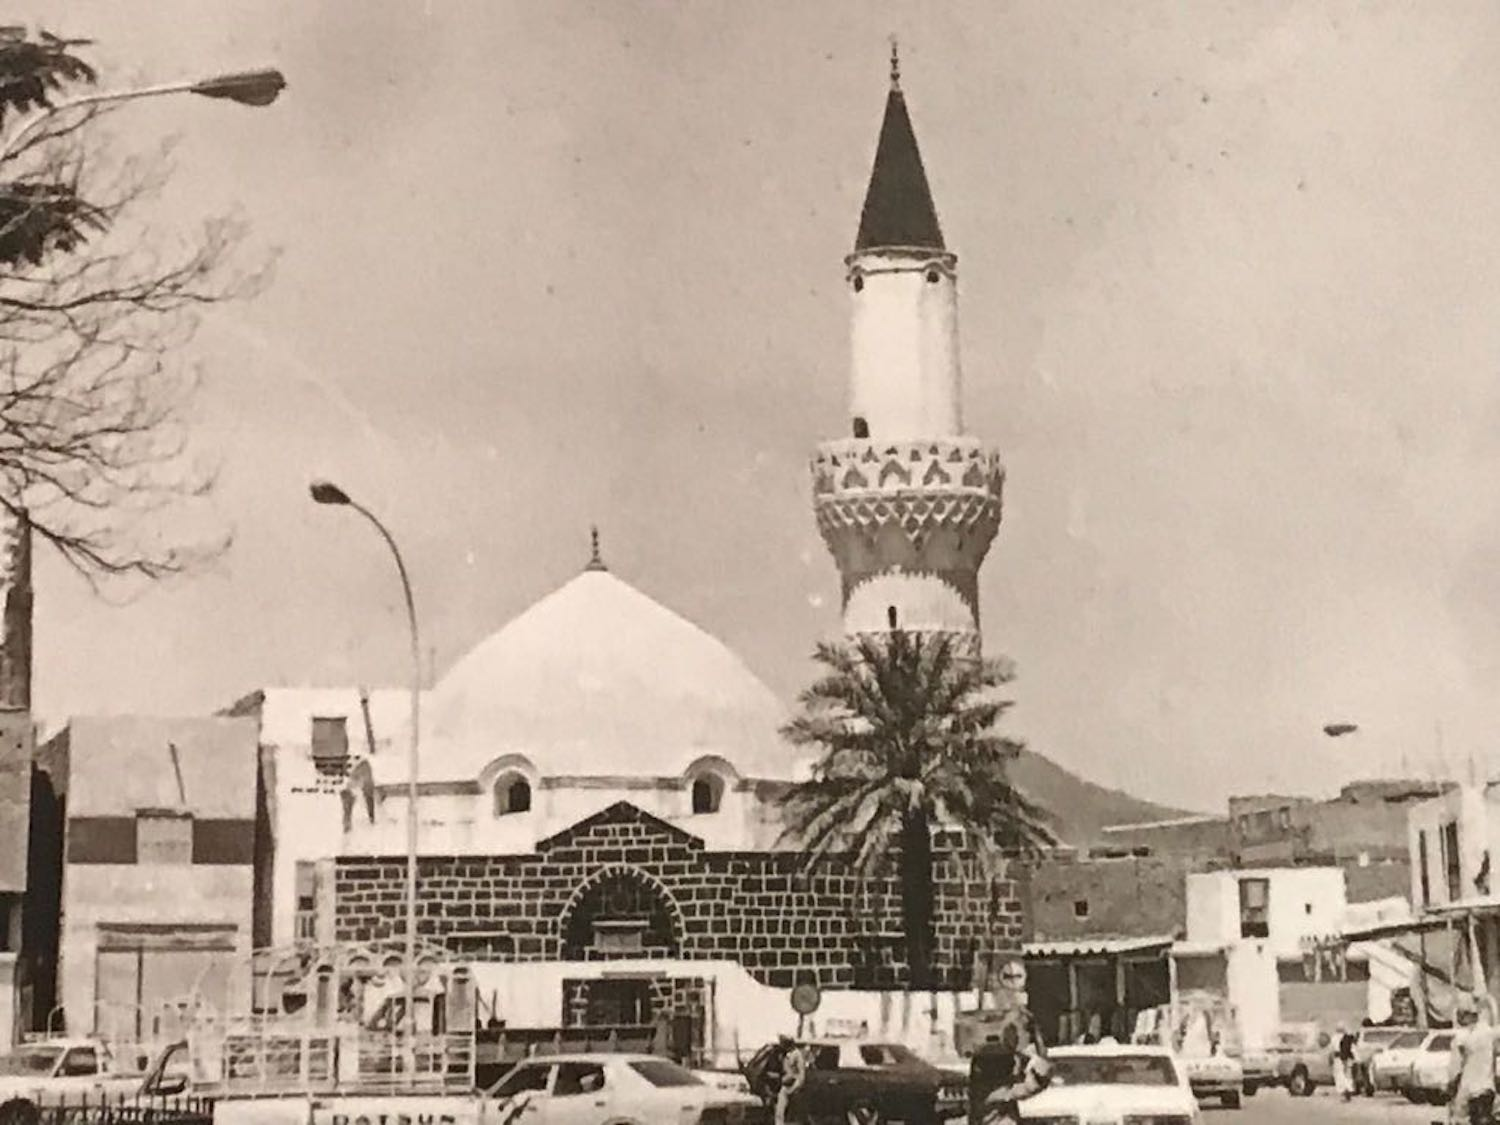 Abu Bakr Mosque, rebuilt in 1838 by the Ottomans